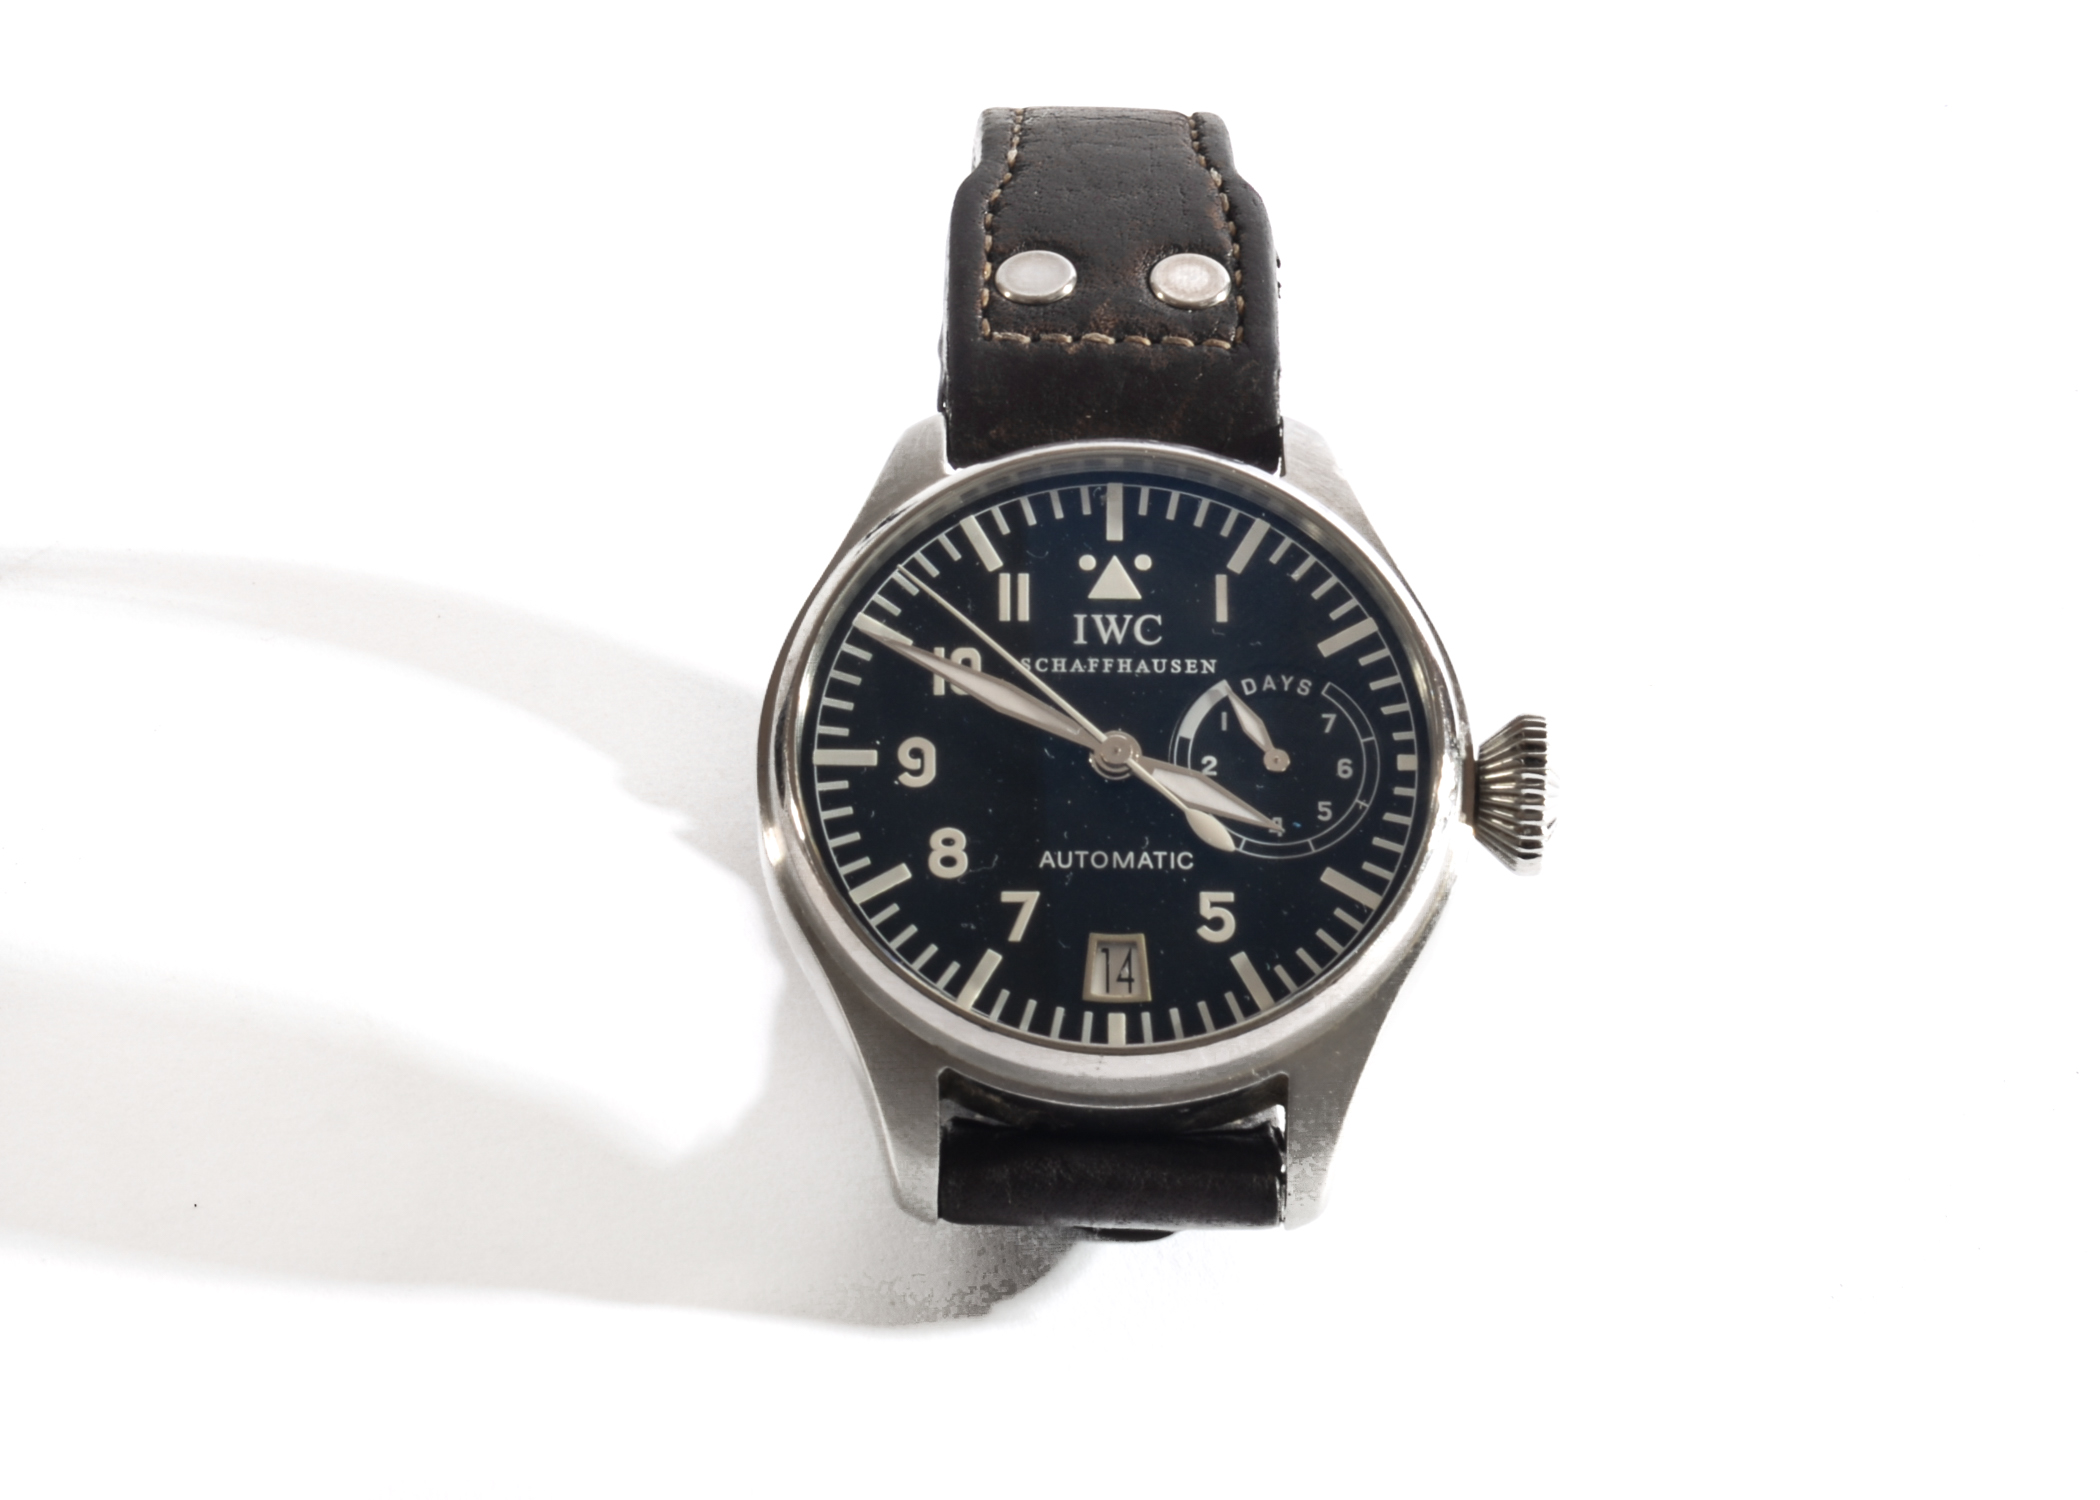 Lot 3 - An IWC SCHAFFHAUSEN Model 5002 Big Pilots Wrist Watch, Stainless Steel 46.2mm Case & Automatic